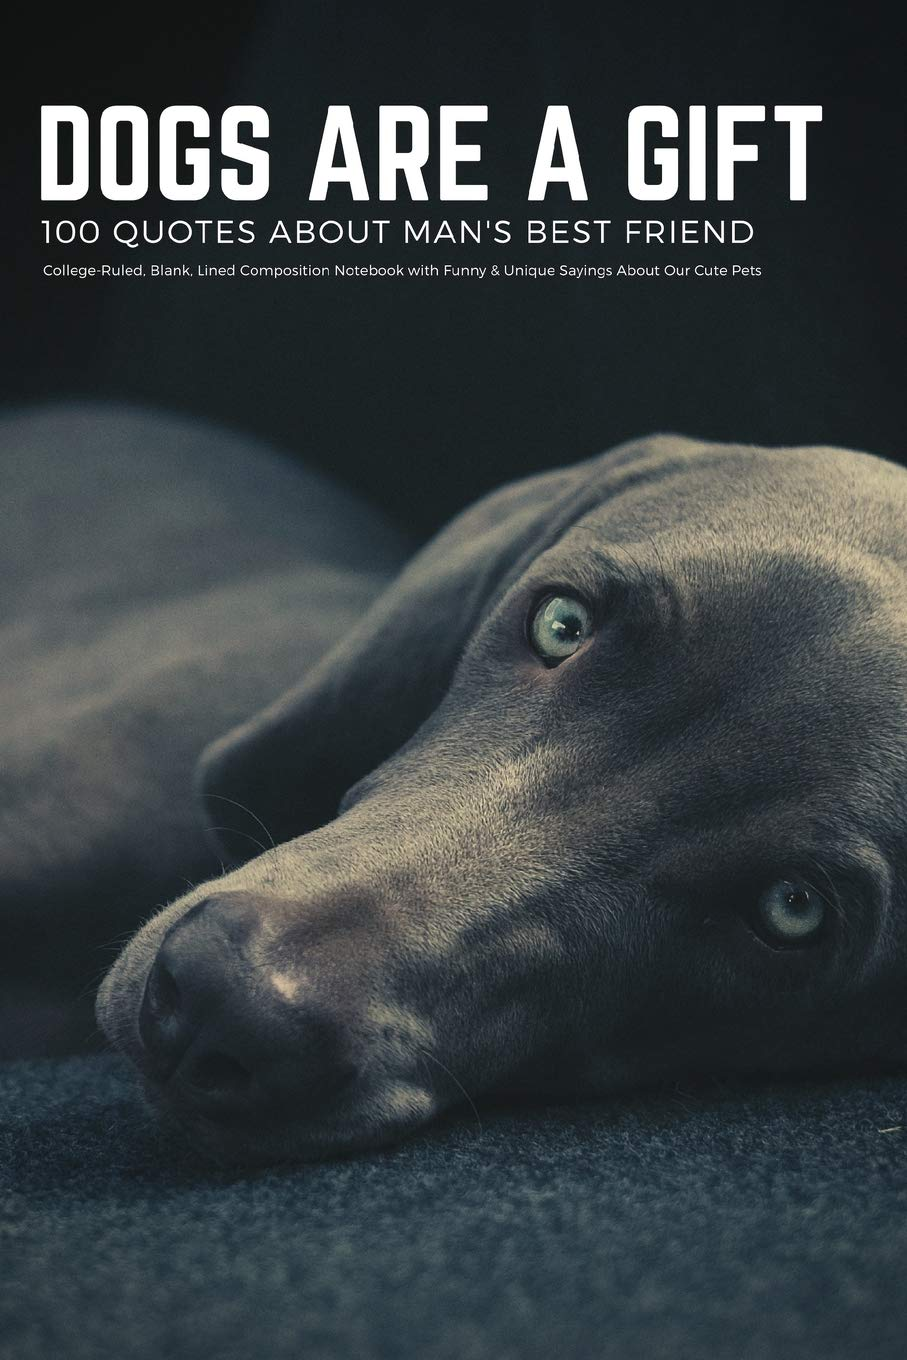 Amazon.com: Dogs Are A Gift 100 Quotes About Man\'s Best ...